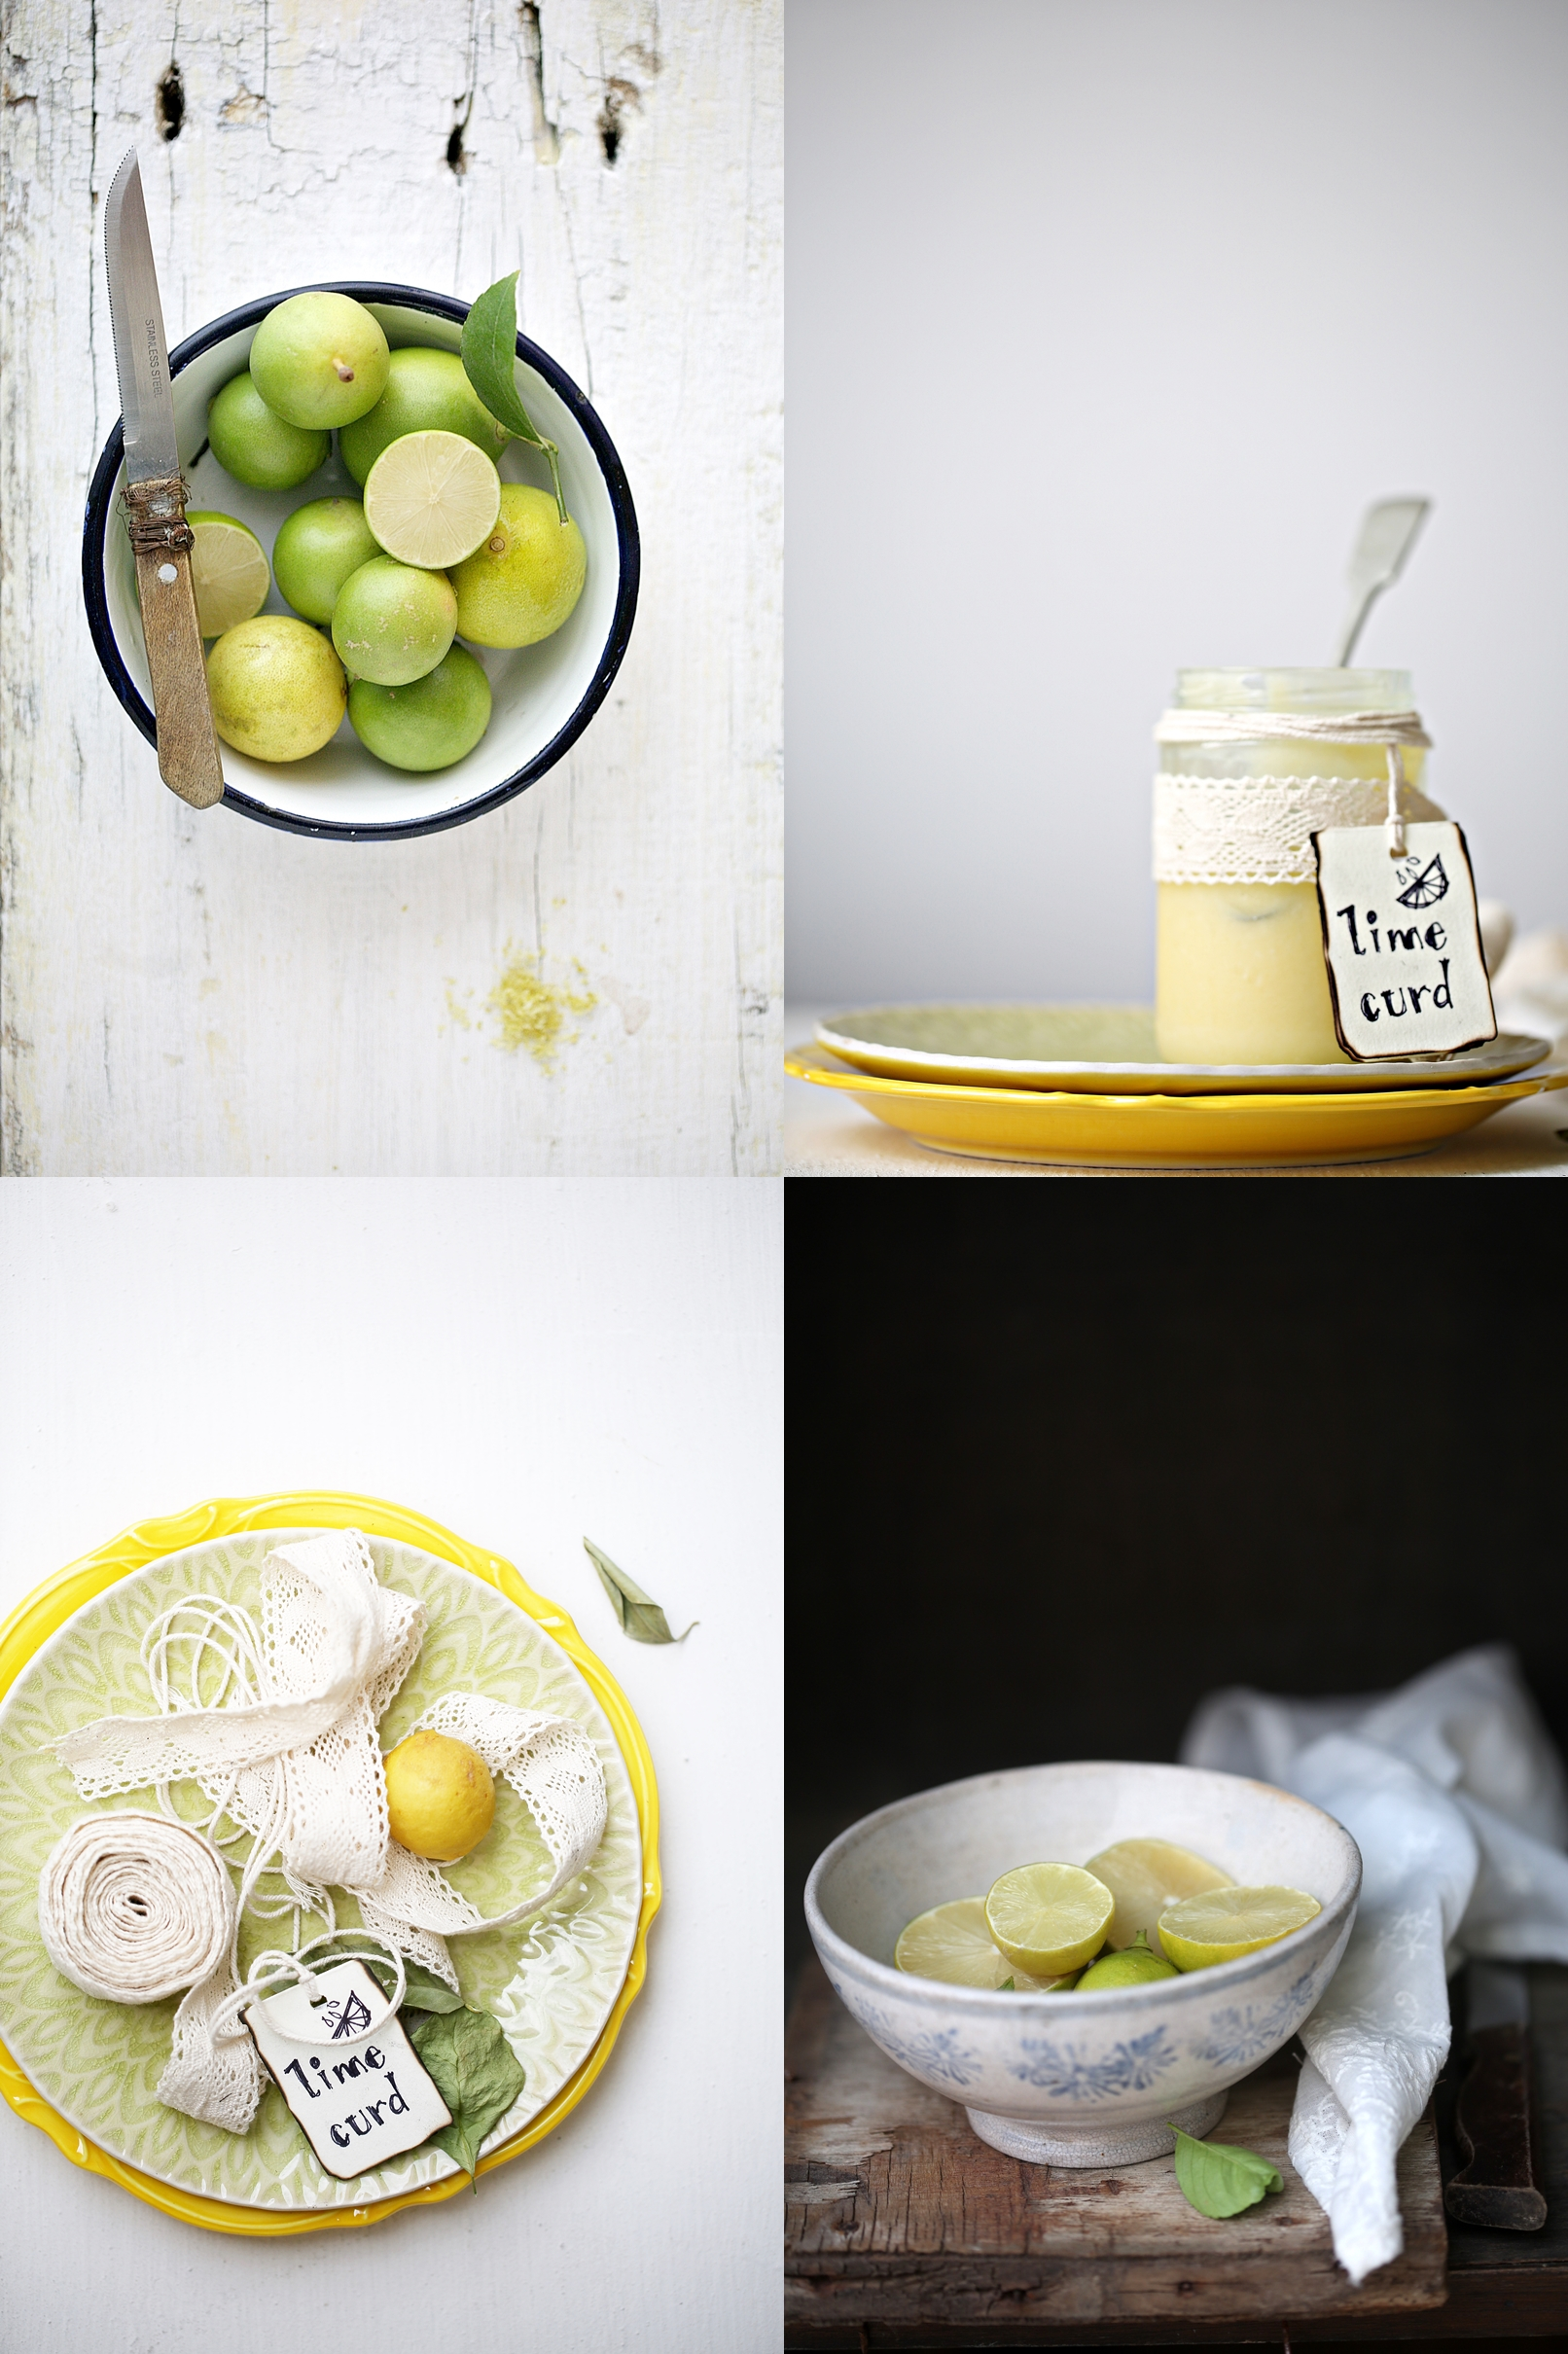 Lime Curd, Homemade, Thermomix